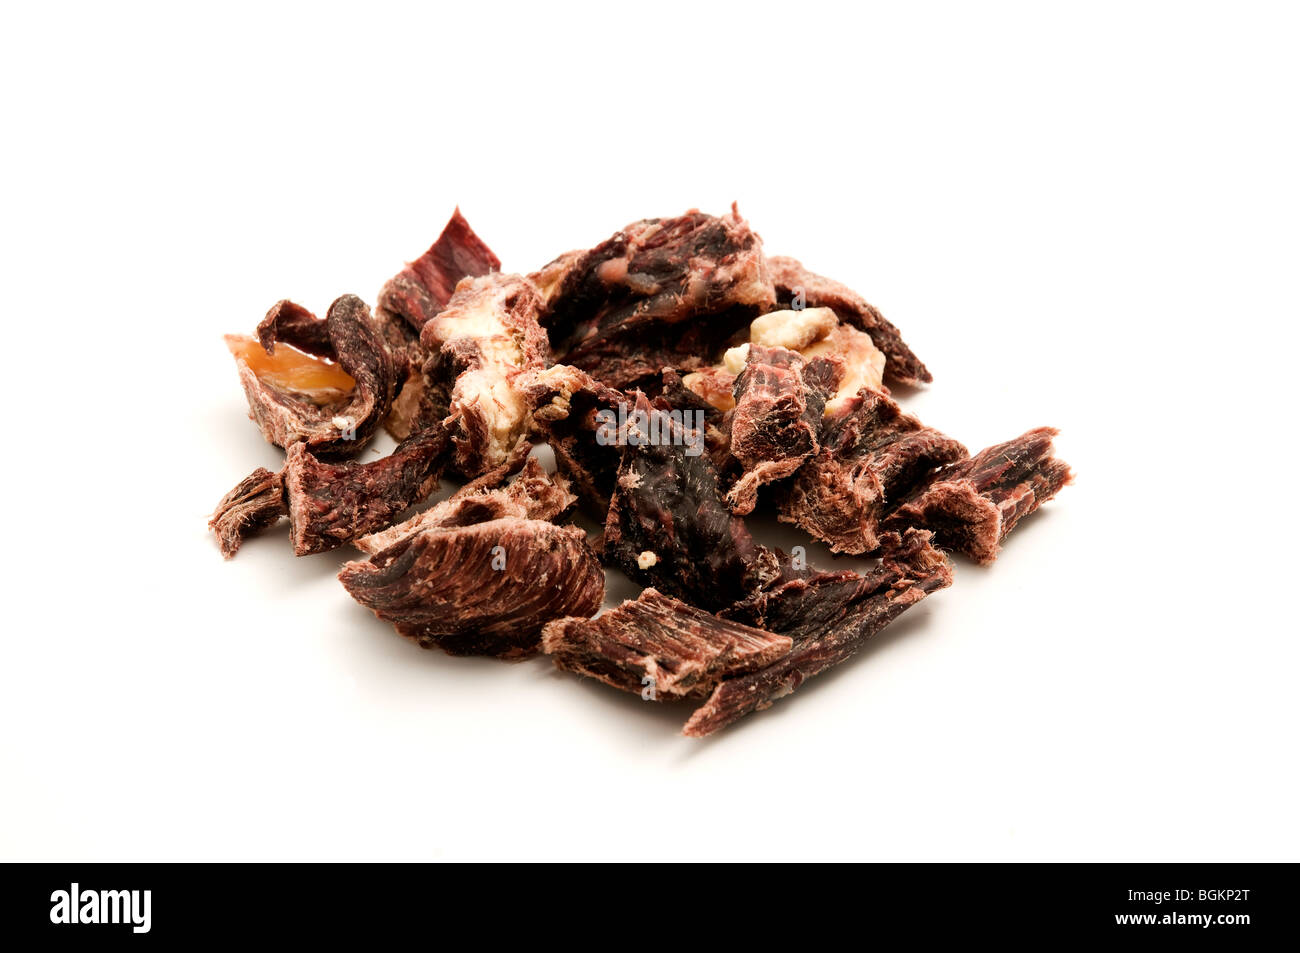 Dry Yak Meat on a white background - Stock Image